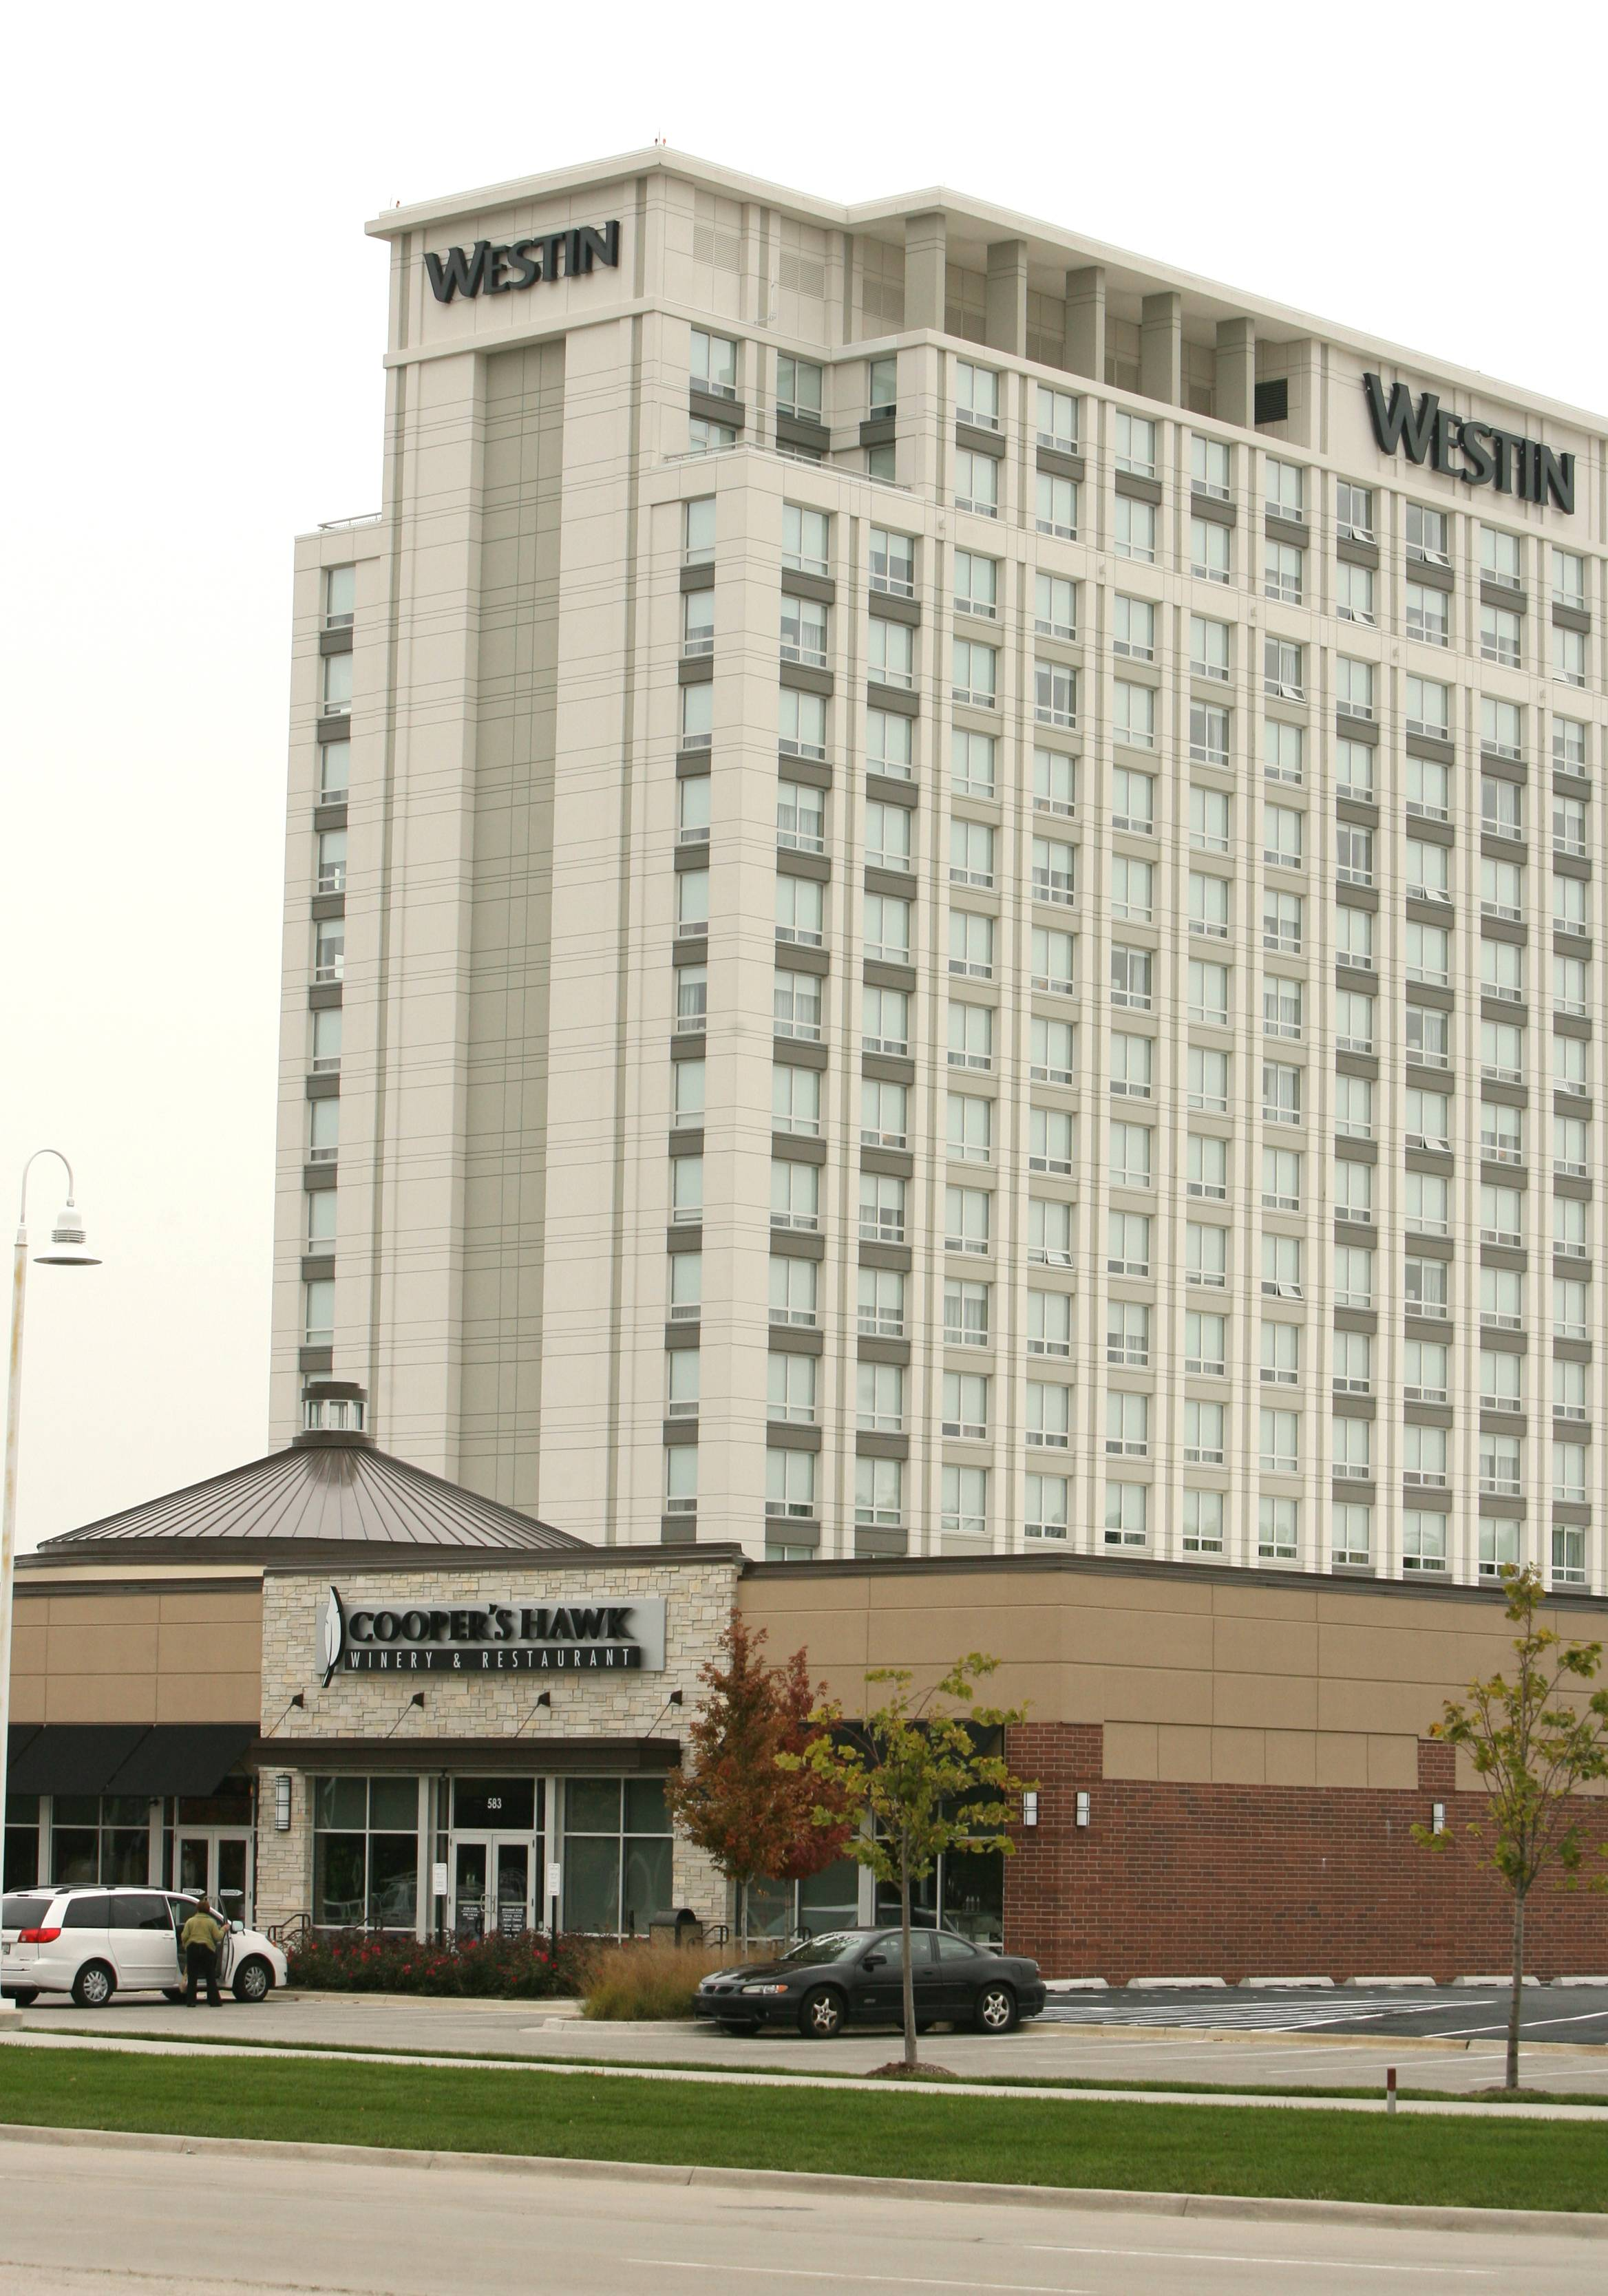 At the urging of the Westin Chicago North Shore Hotel, Wheeling officials are considering possible membership in the North Shore Convention & Visitor's Bureau. Membership would cost the village $70,000 in annual dues, plus a one-time $35,000 initiation fee.